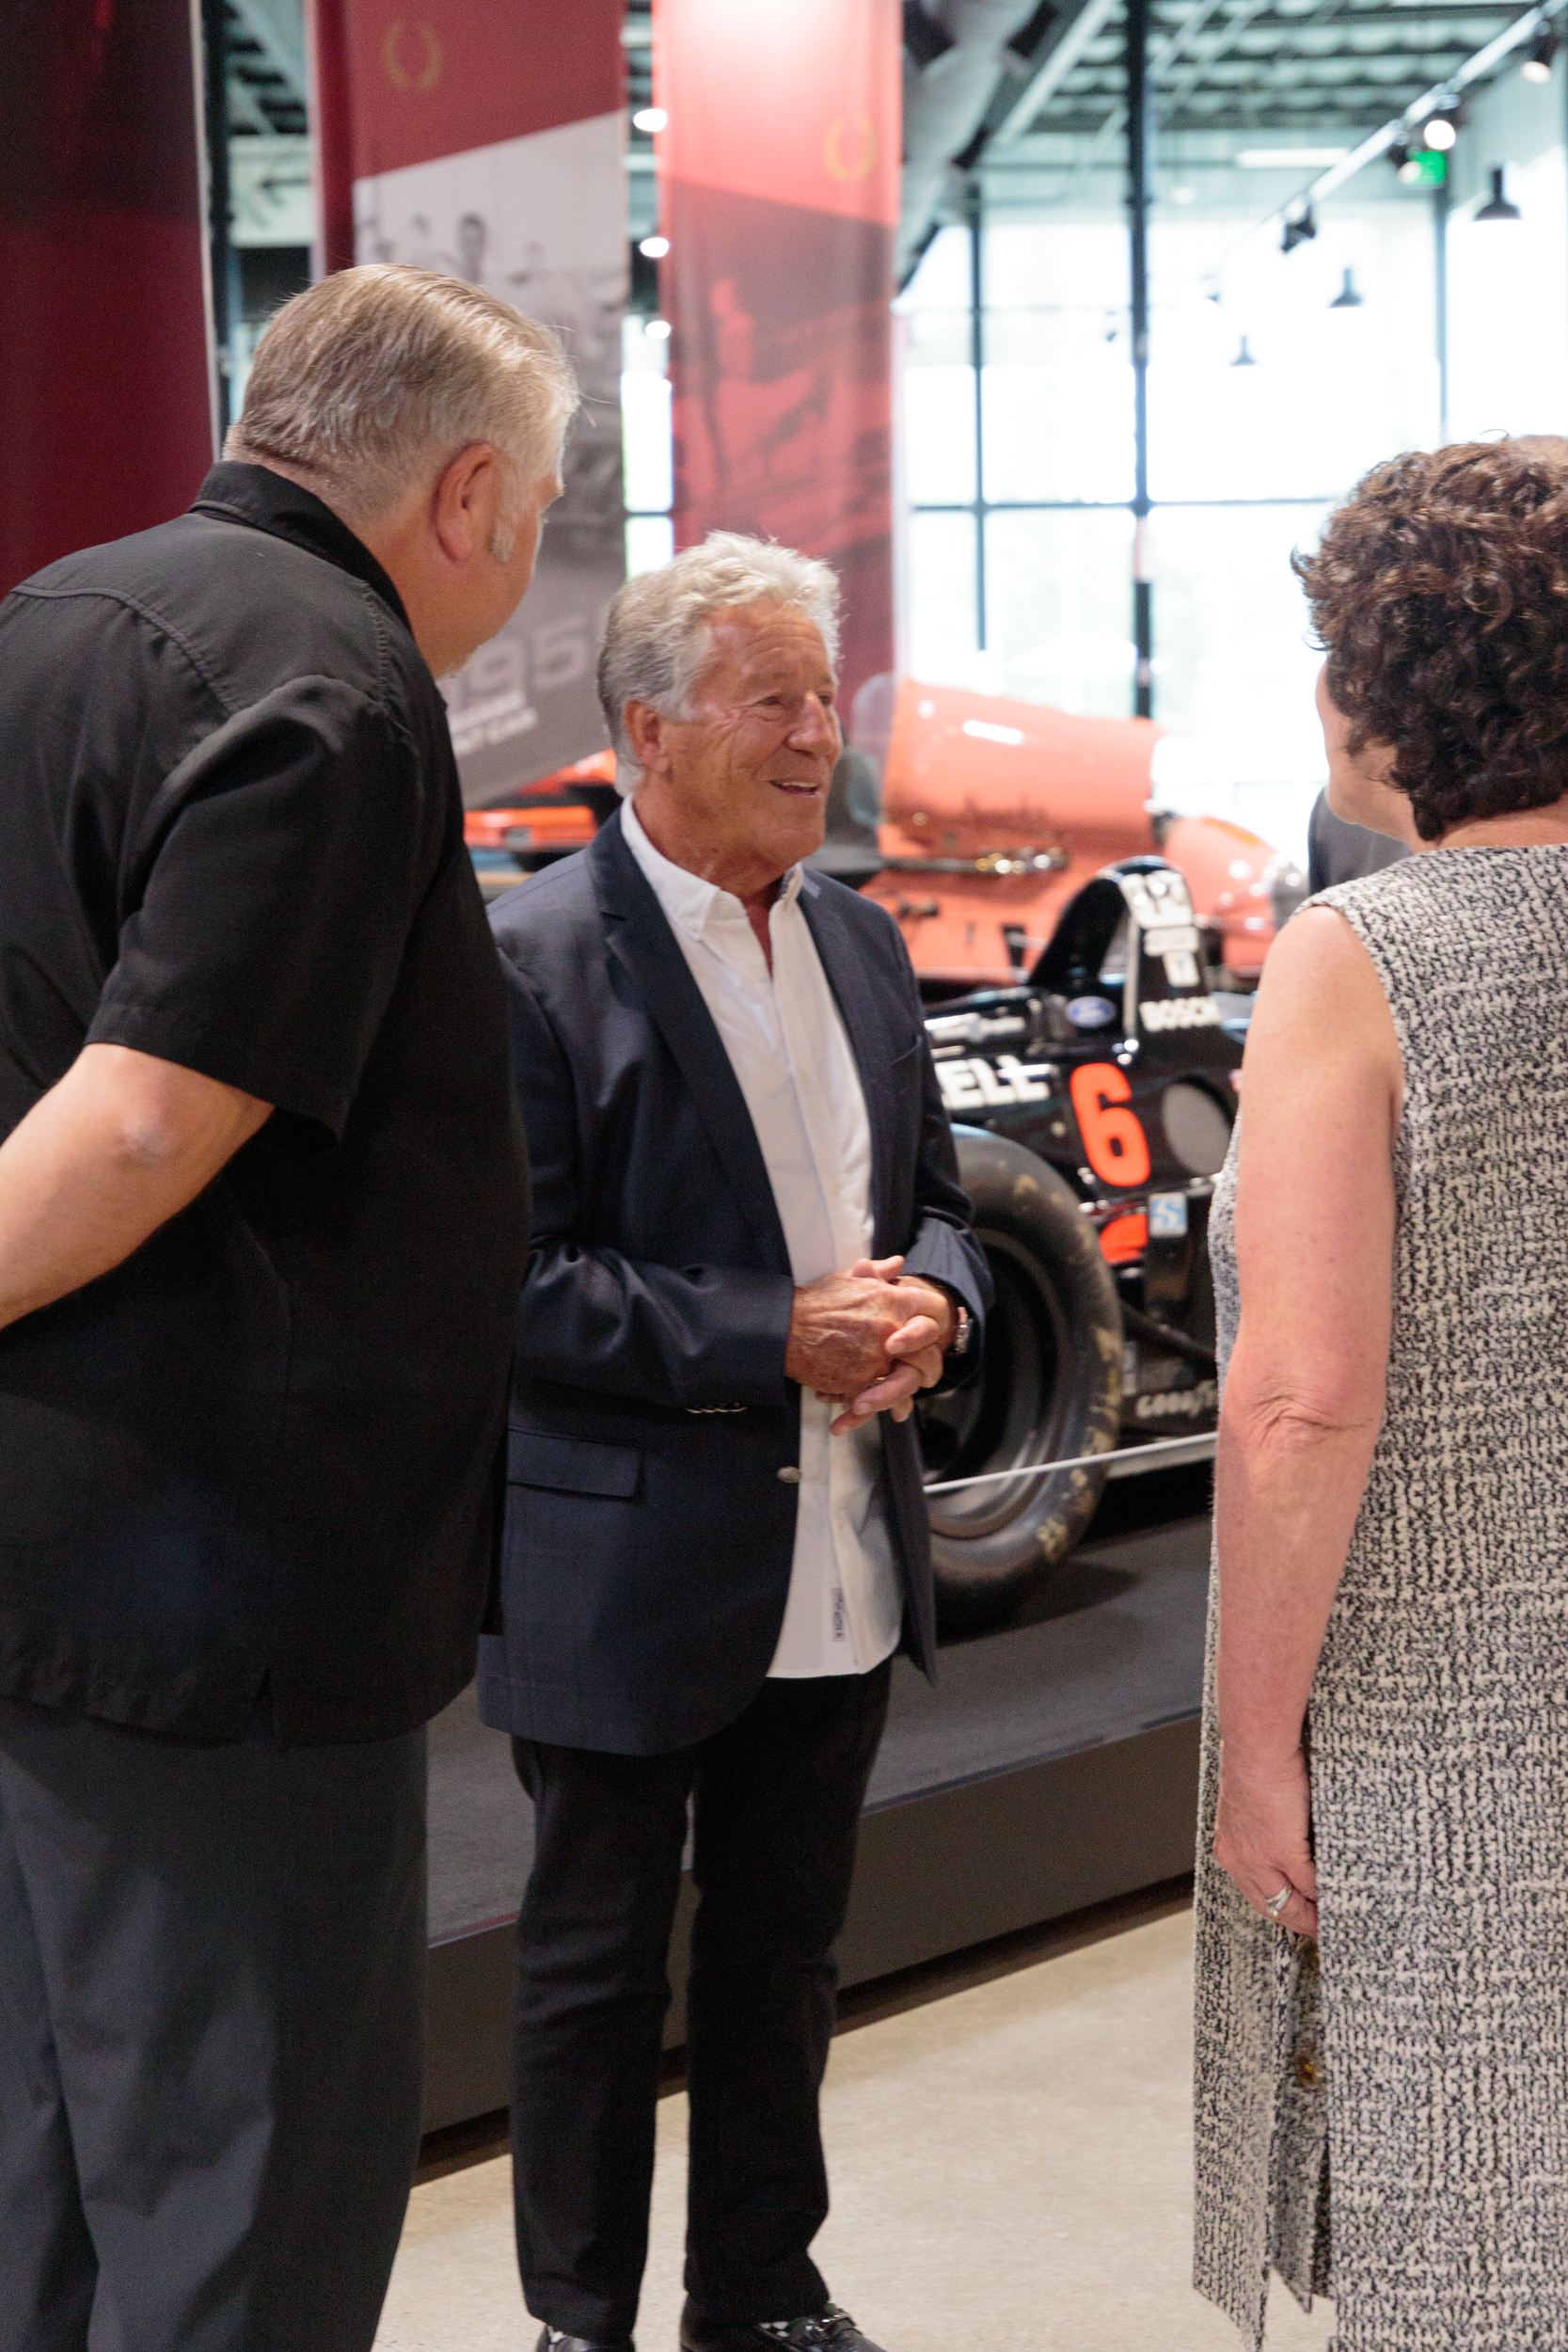 _E4A0074_An Evening with Mario Andretti_20190829.jpg